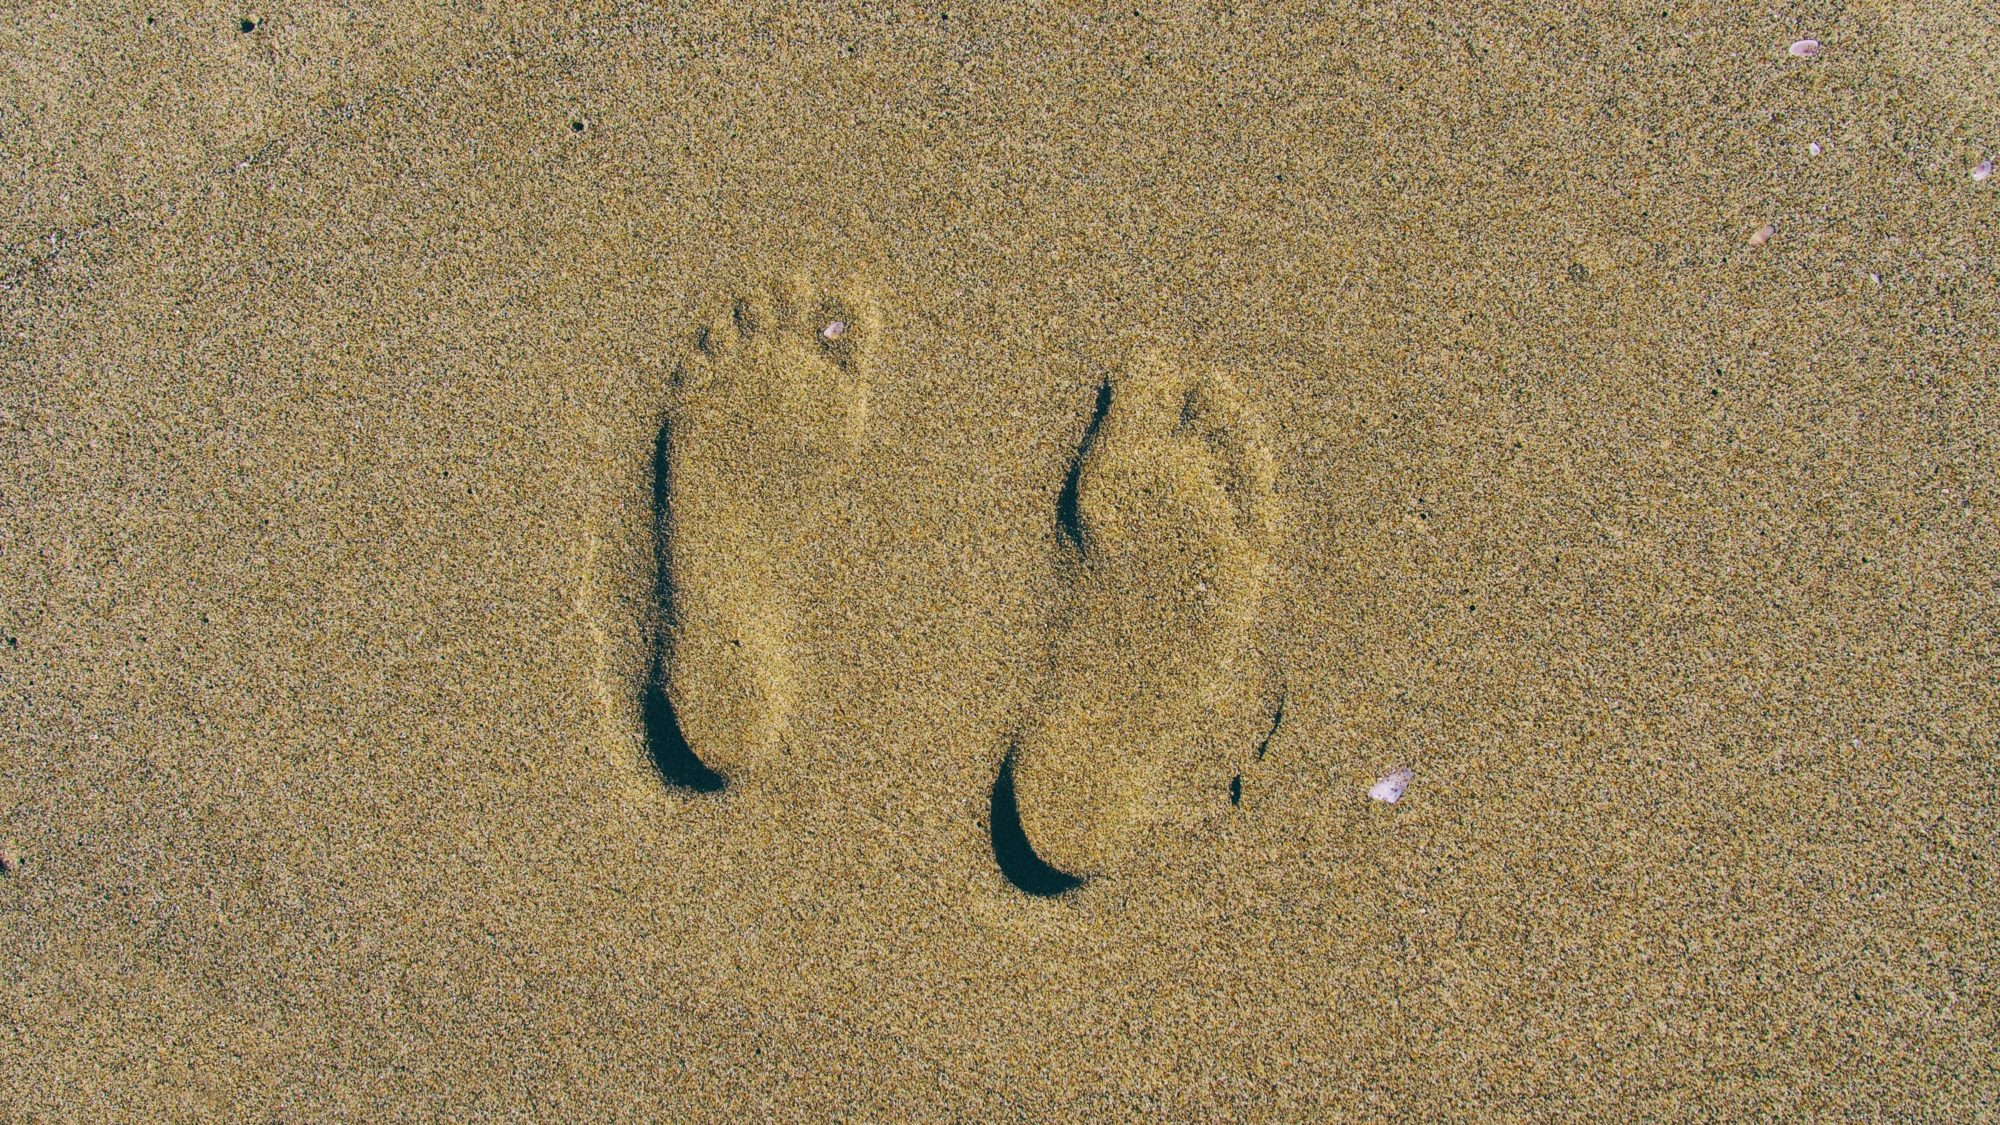 Two footprints in the sand.